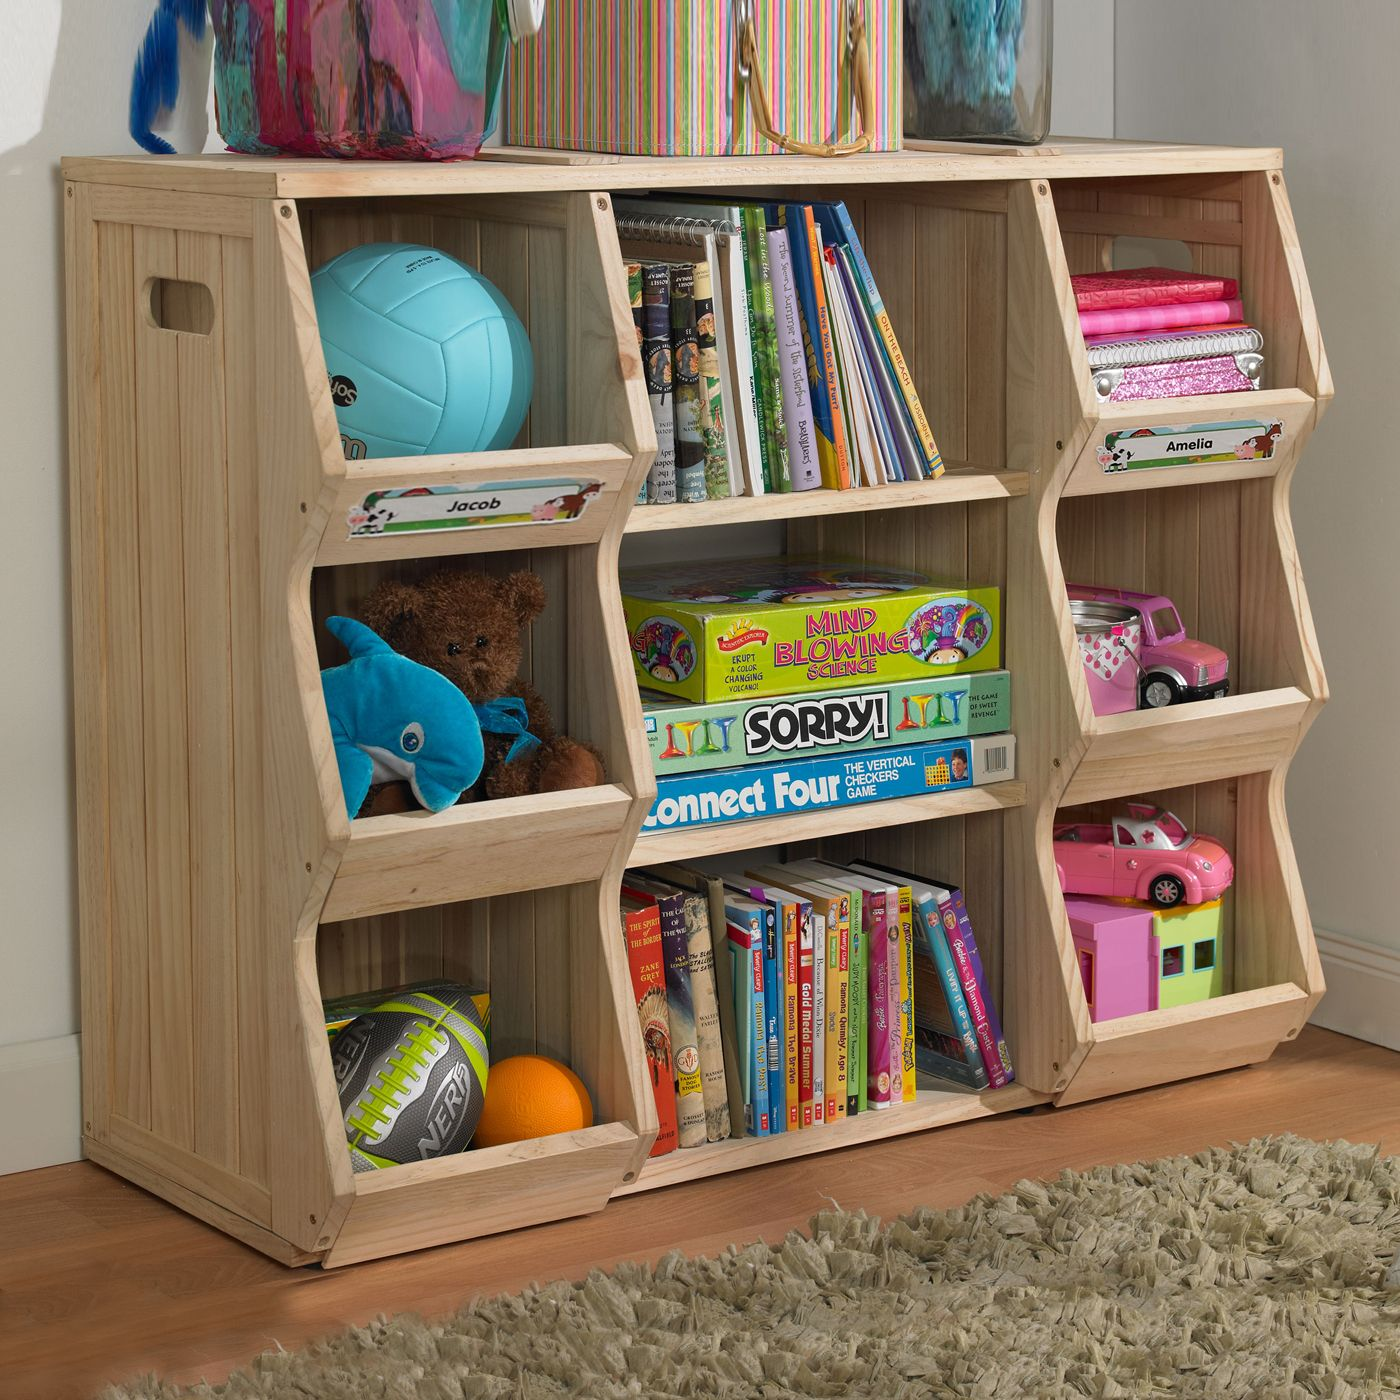 Merry products slf0031901910 children 39 s bookshelf cubby for Kids room storage ideas